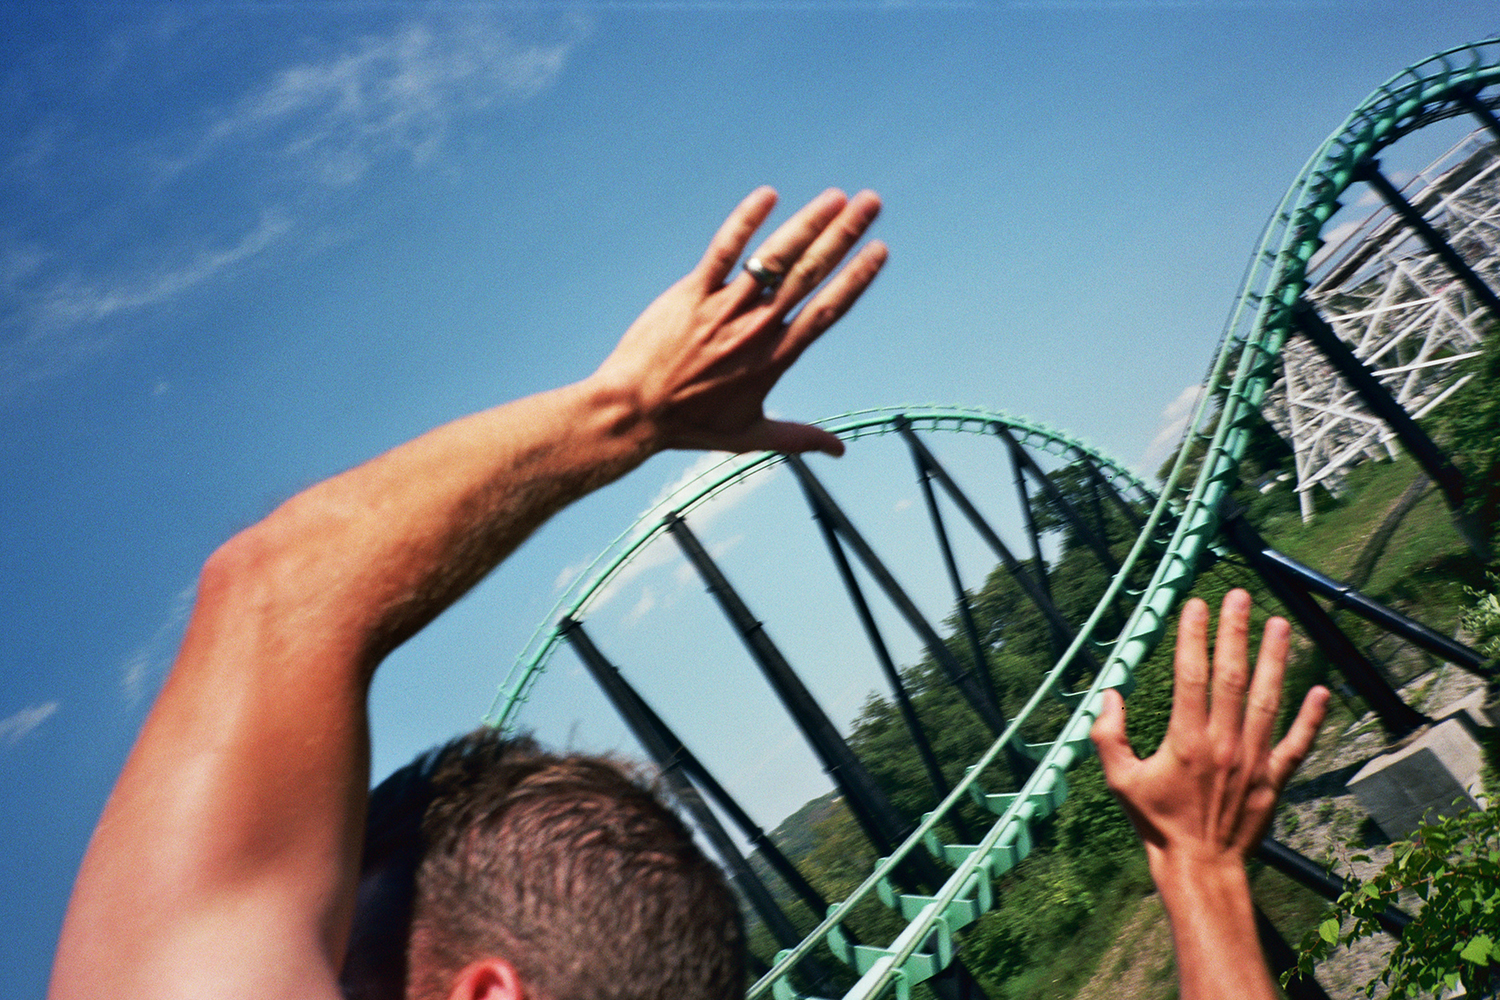 Copyright_SamiNaffziger_Website_Kennywood_02.jpg